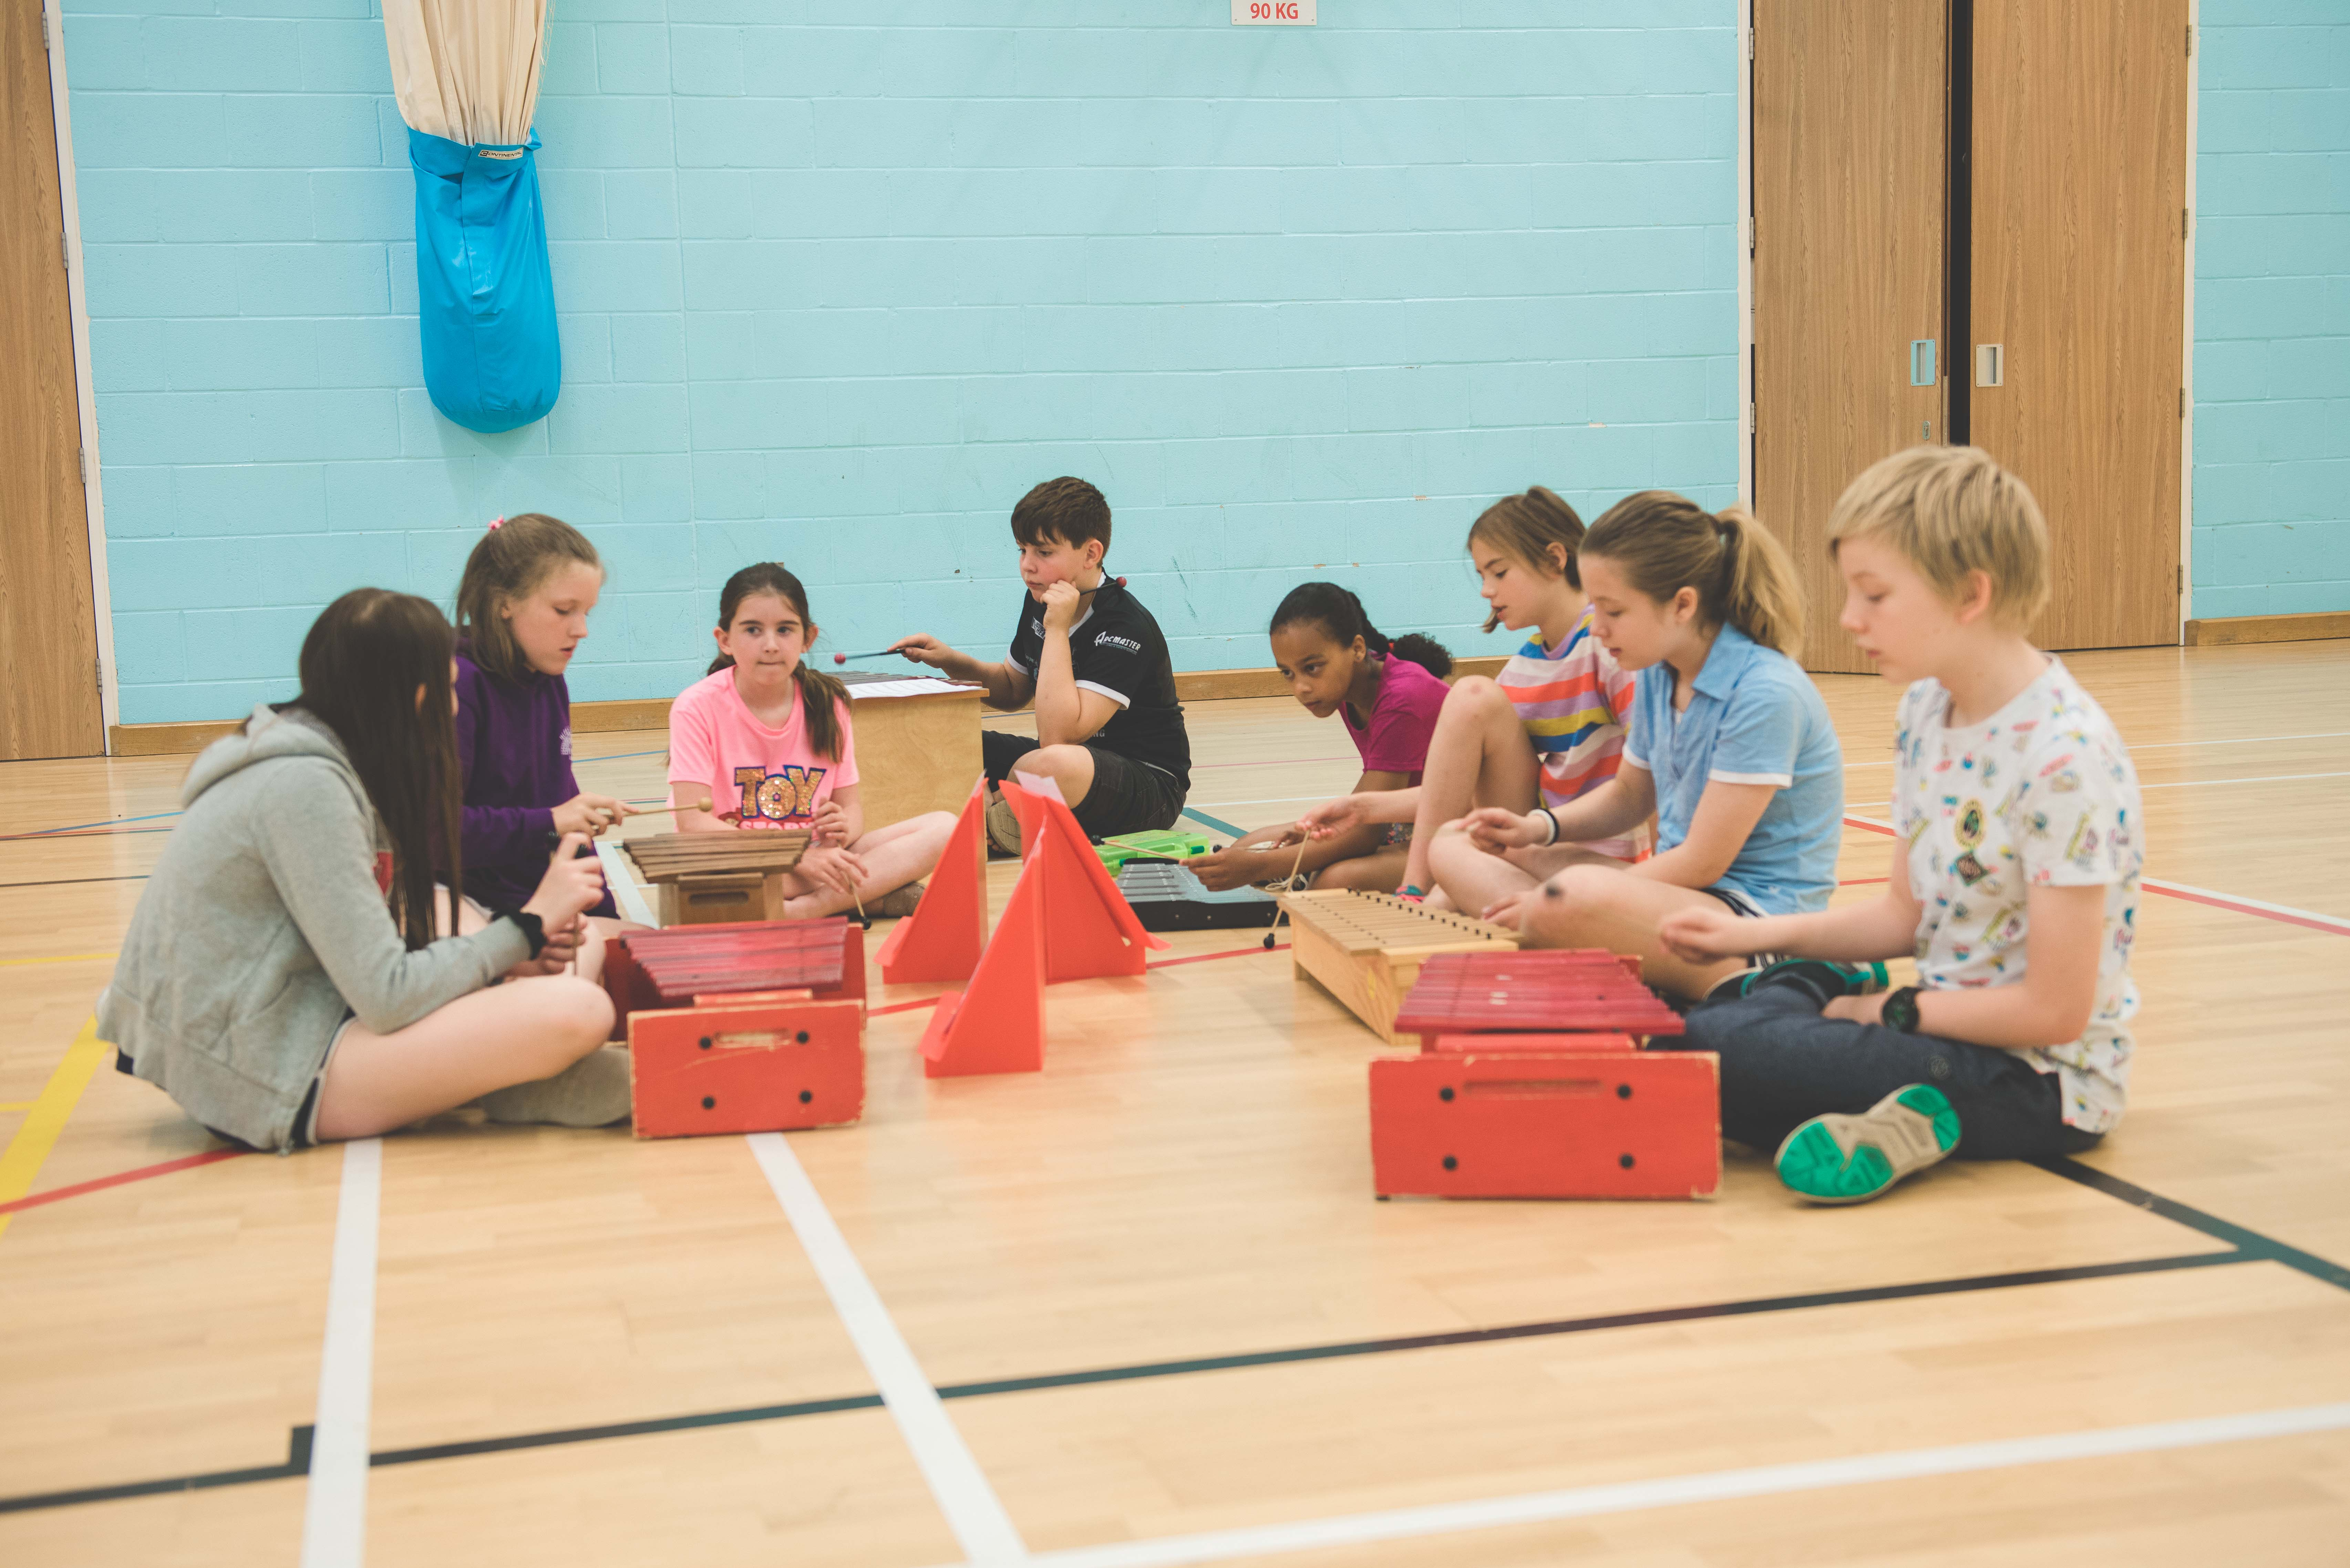 group of 7 summer school students practising xylophone